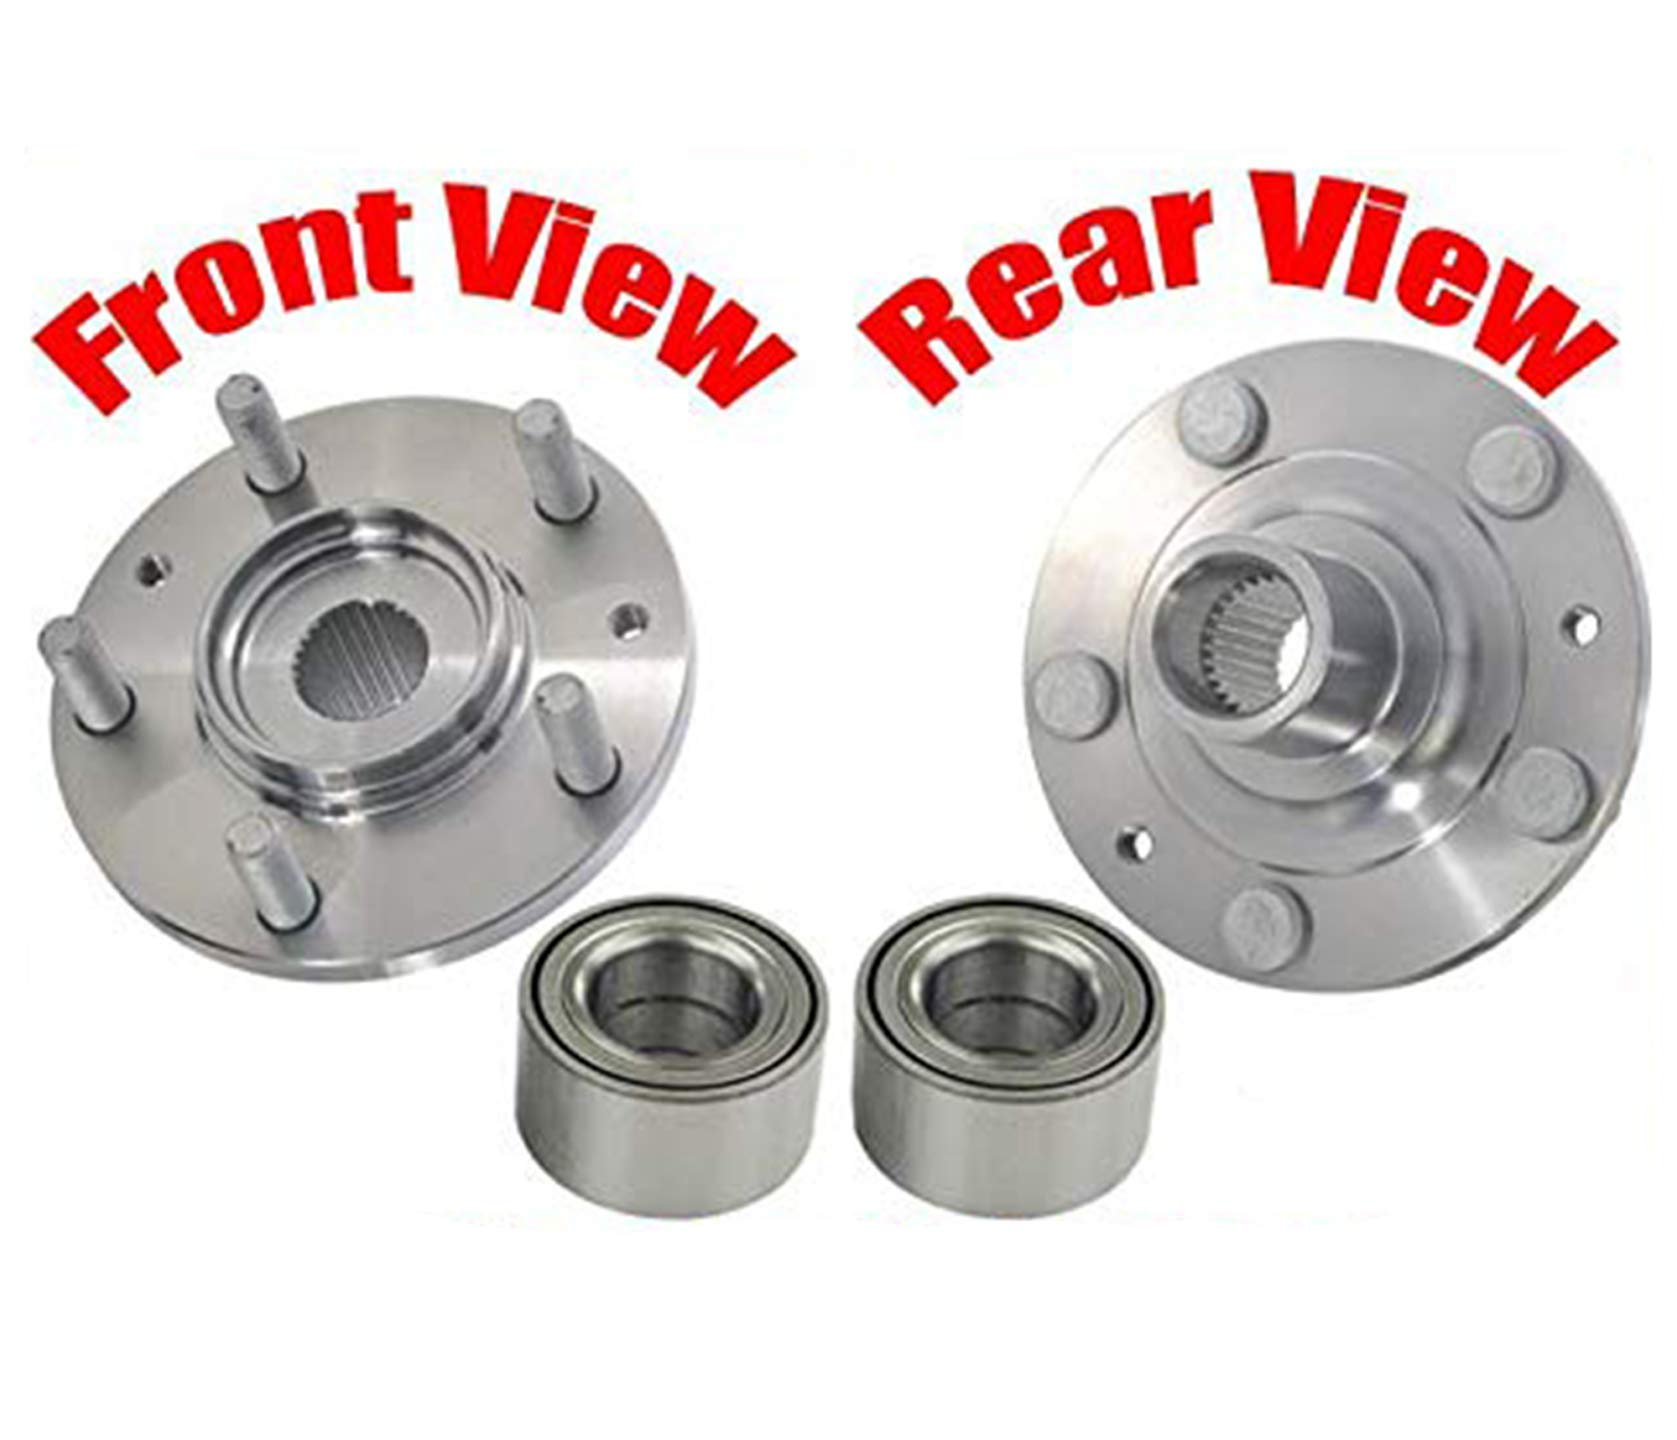 100% New Wheel Hub & Bearing Torque Tested New for Mazda 6 03-13 Front by Mac Auto Parts